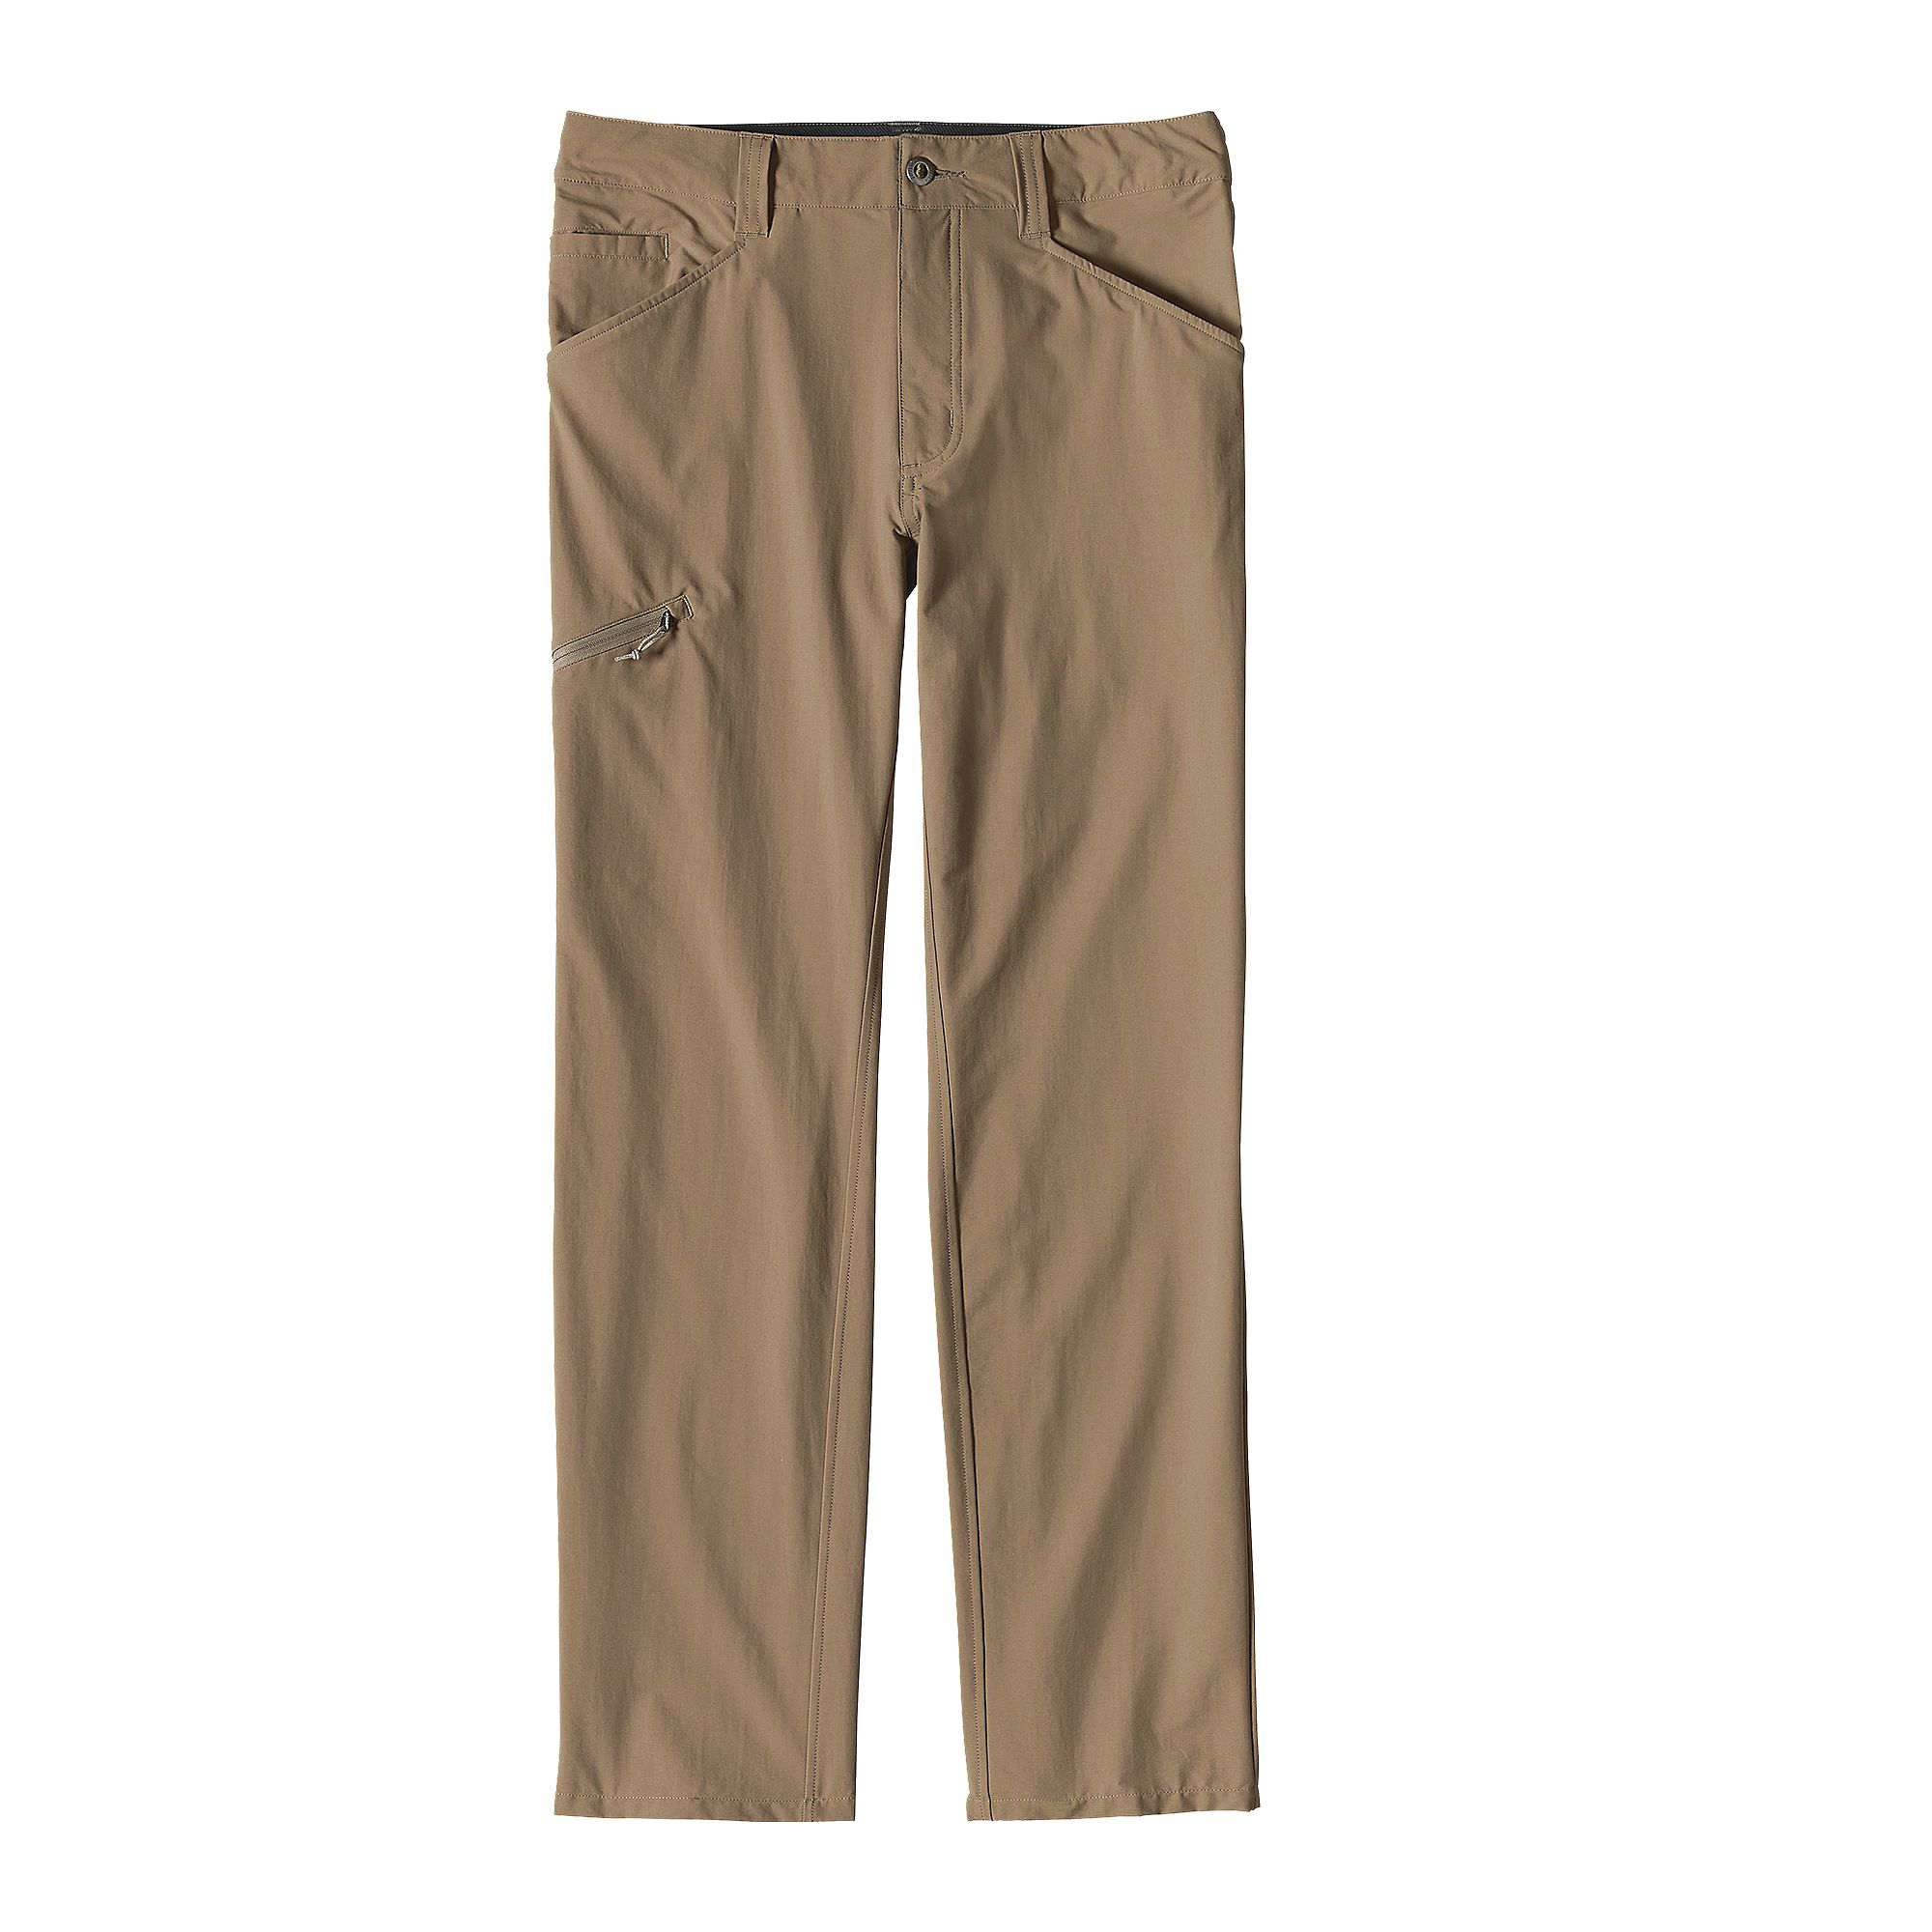 e8b028b842bb The 9 Best Hiking Pants of 2019